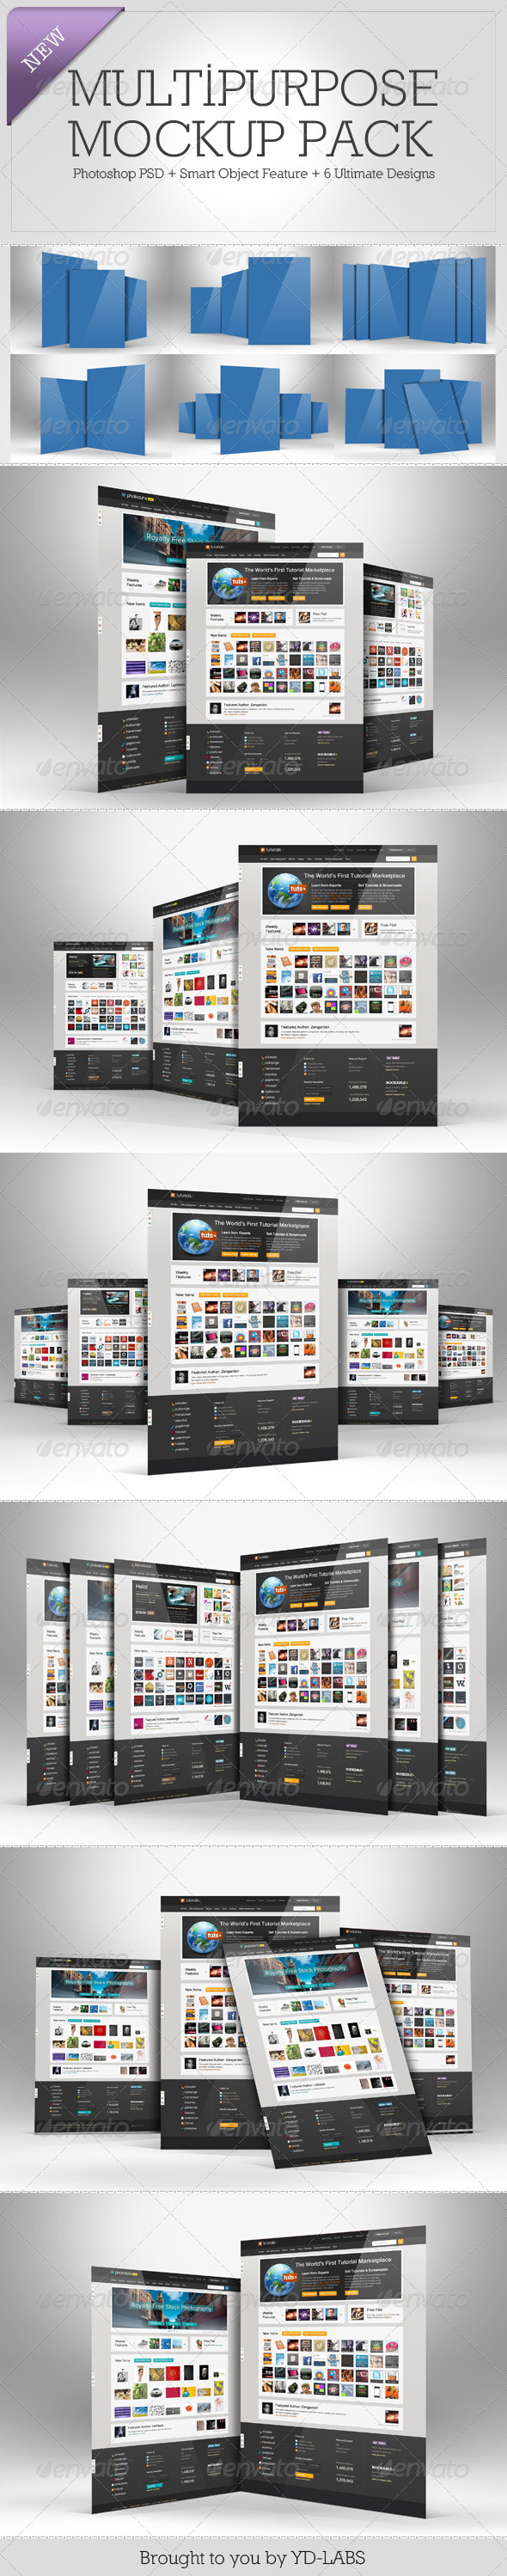 Multipurpose Mockup Pack 2 - Miscellaneous Displays